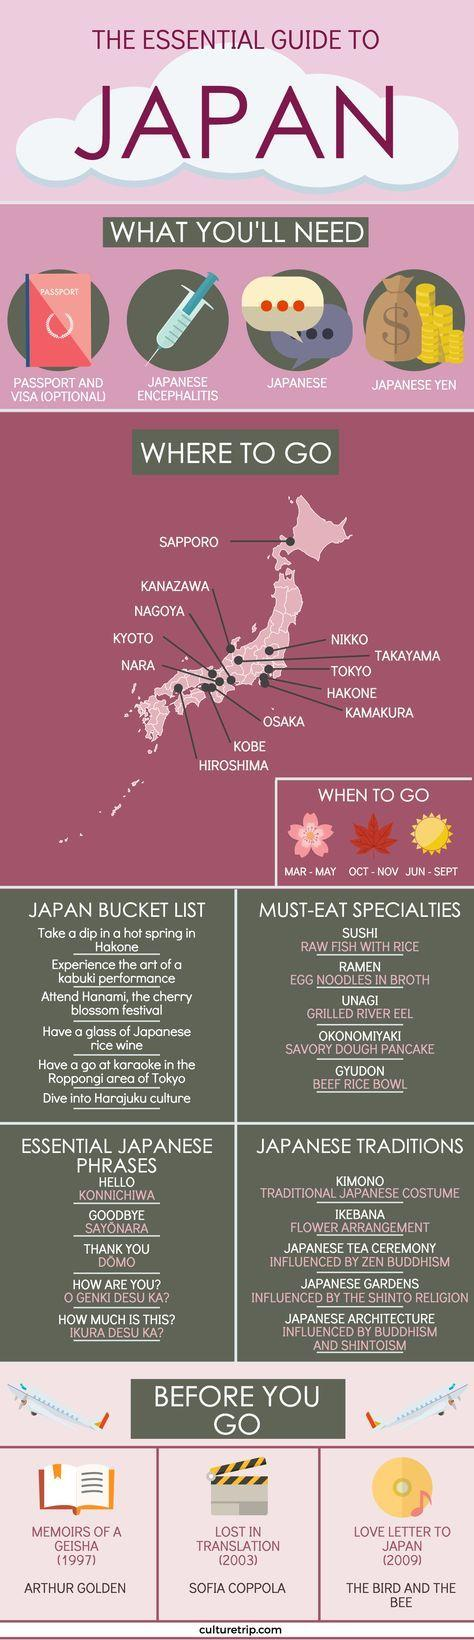 Wedding - Travel Guide For Japan